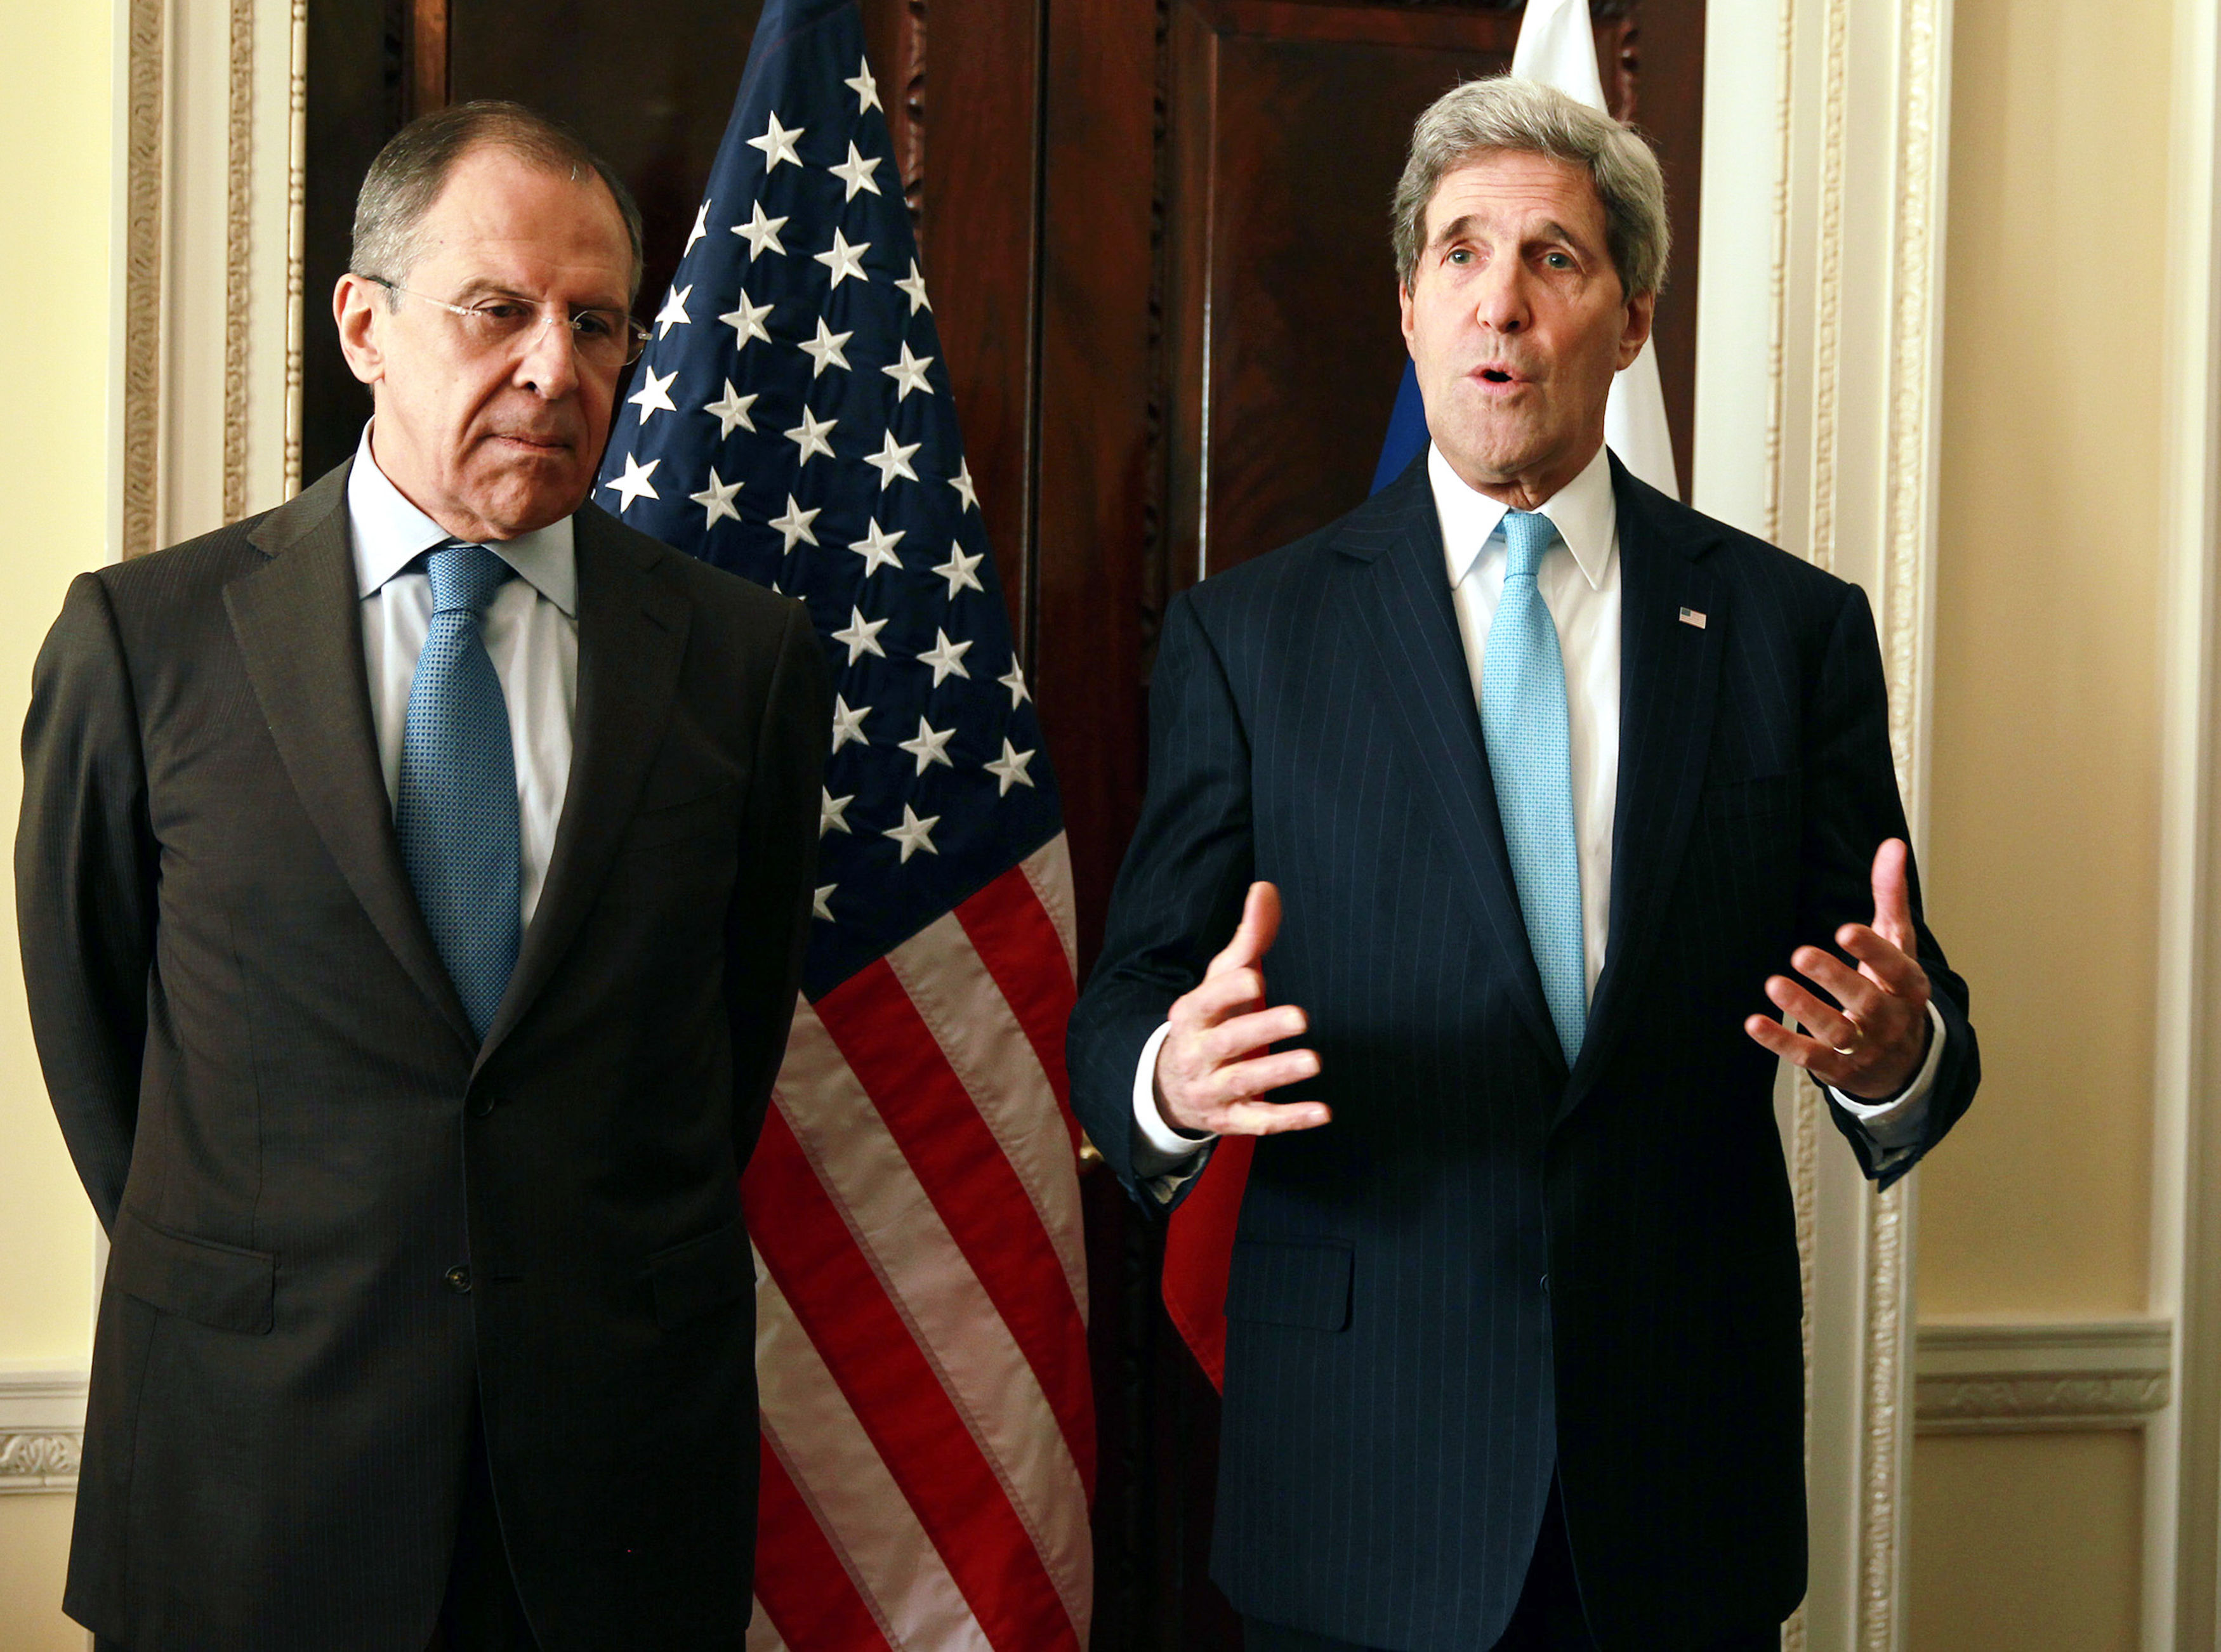 John Kerry And Sergey Lavrov's Crimea Meeting Ends With Cold Stares, Icy Words And No Deal